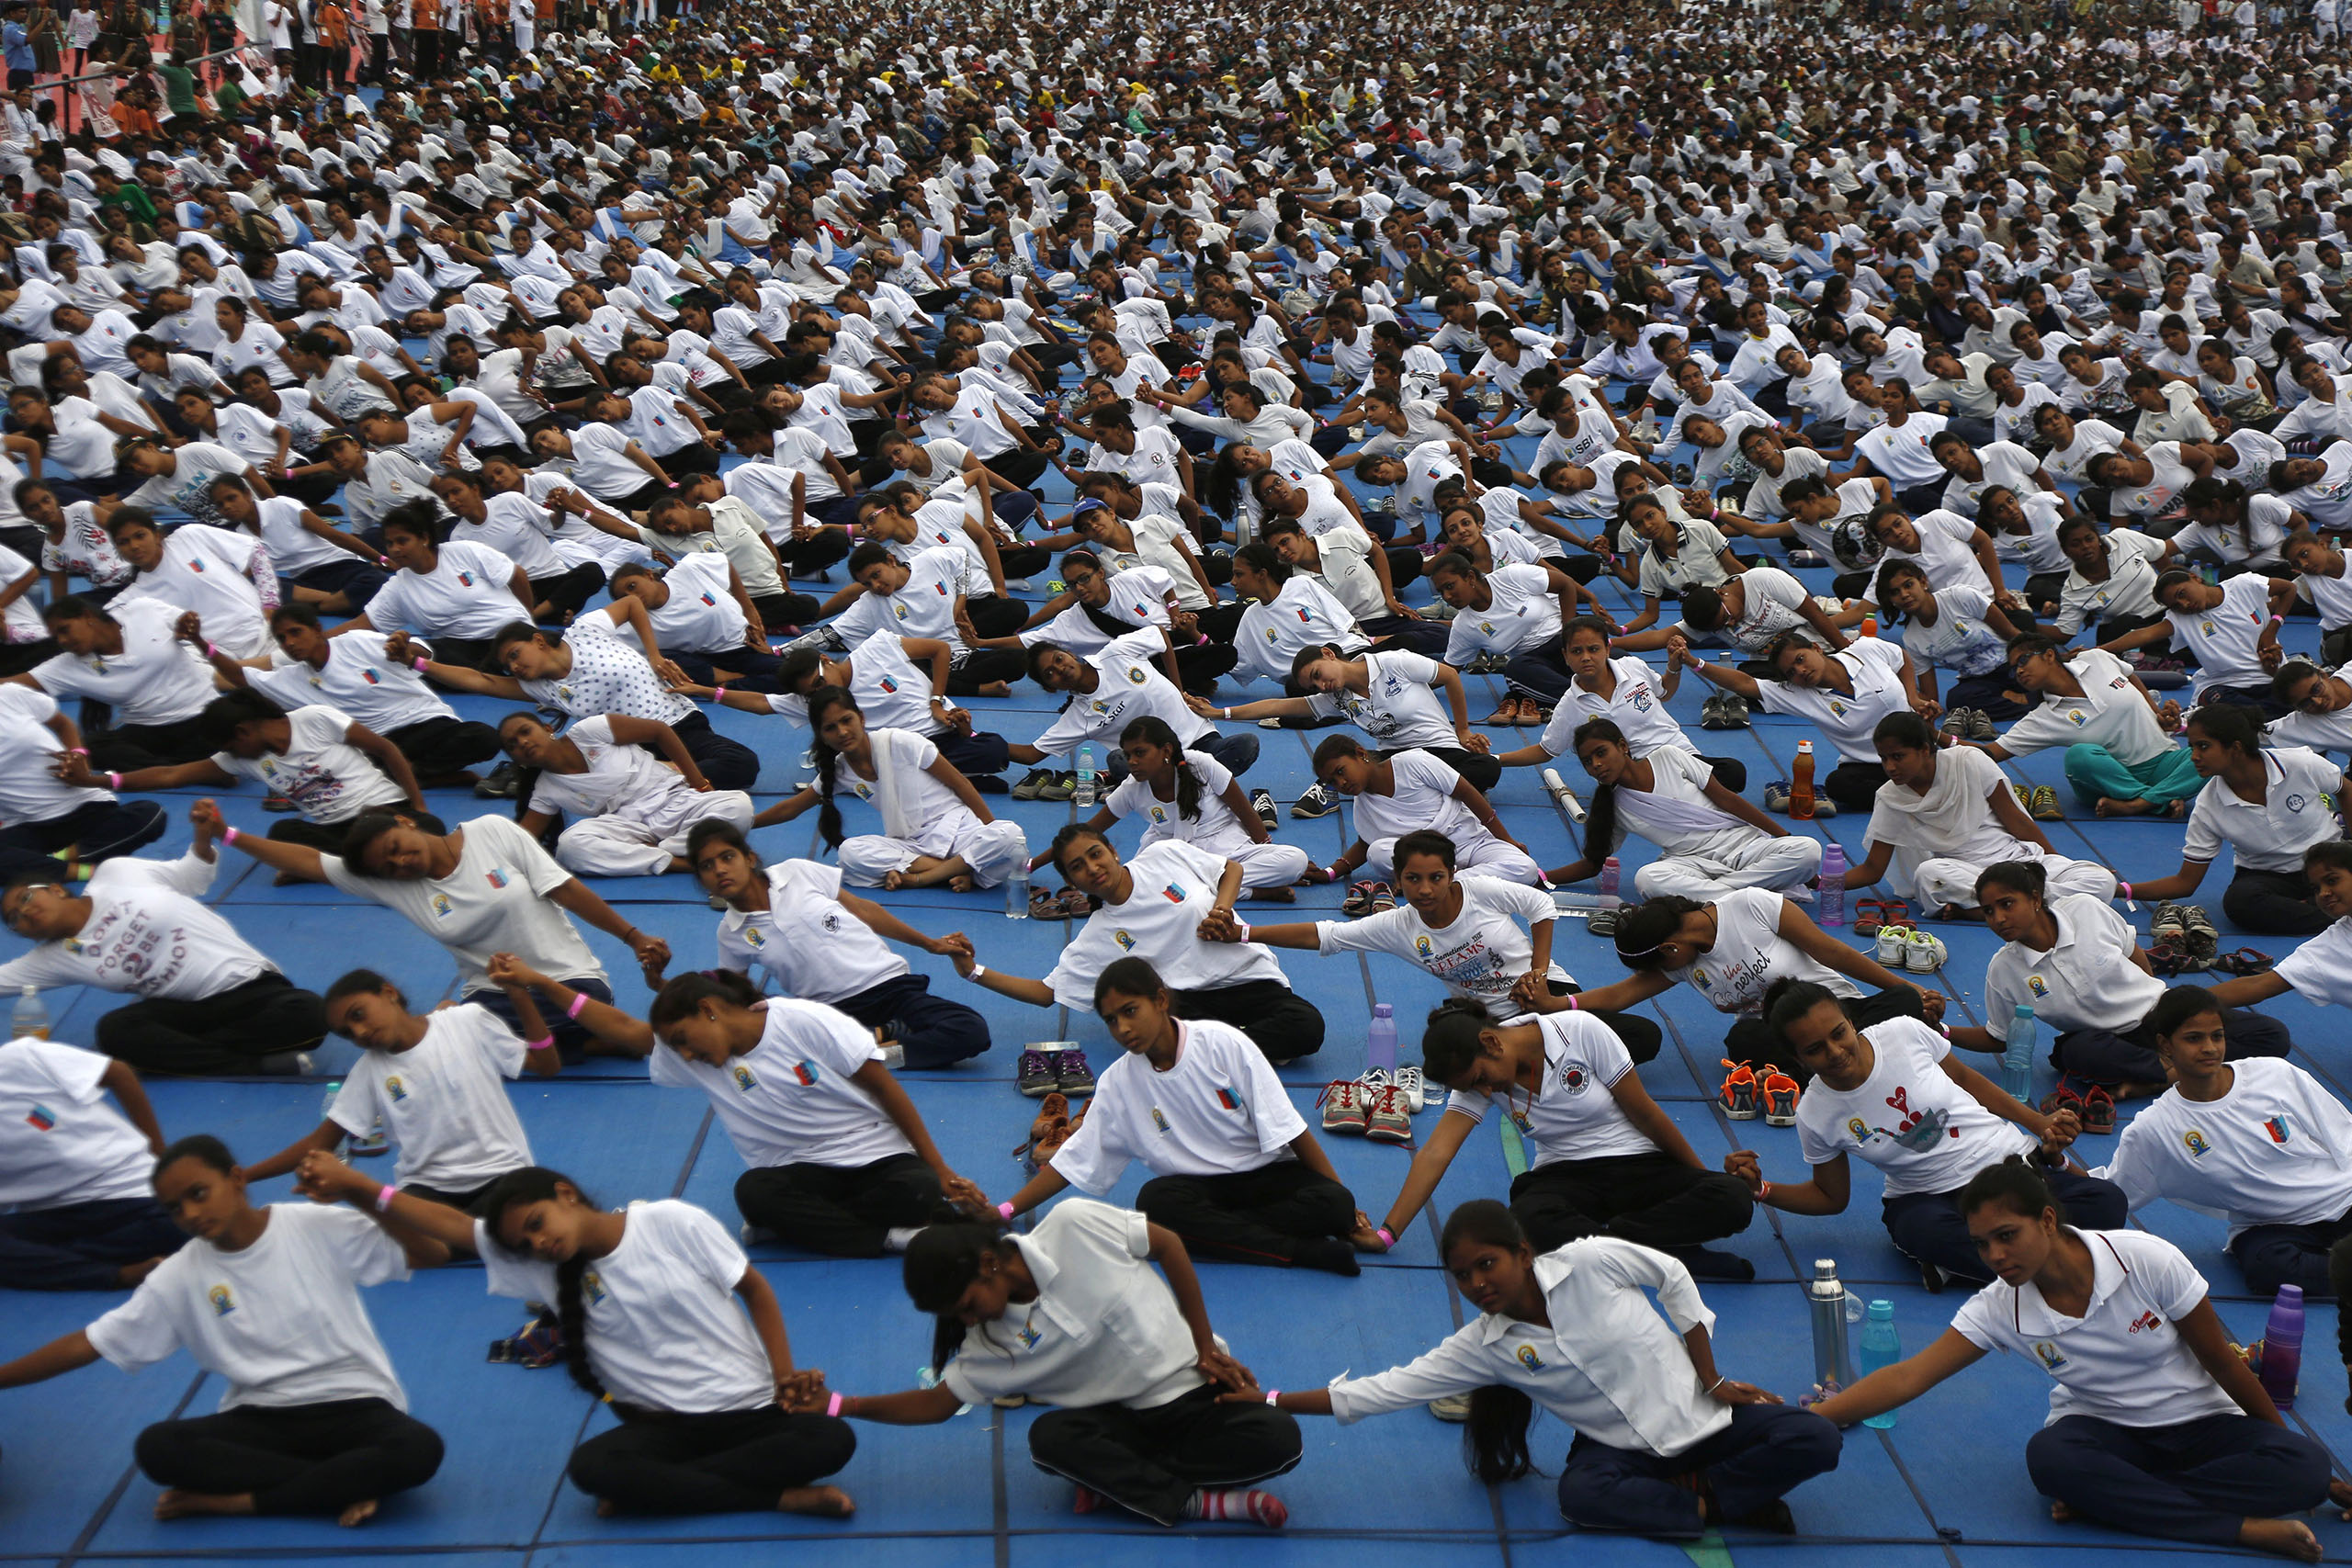 Indians holds hands as they attempt to create a record for the longest human yoga chain with more than 8000 participants at an event to celebrate International Yoga Day in Ahmadabad, India, June 21, 2016.